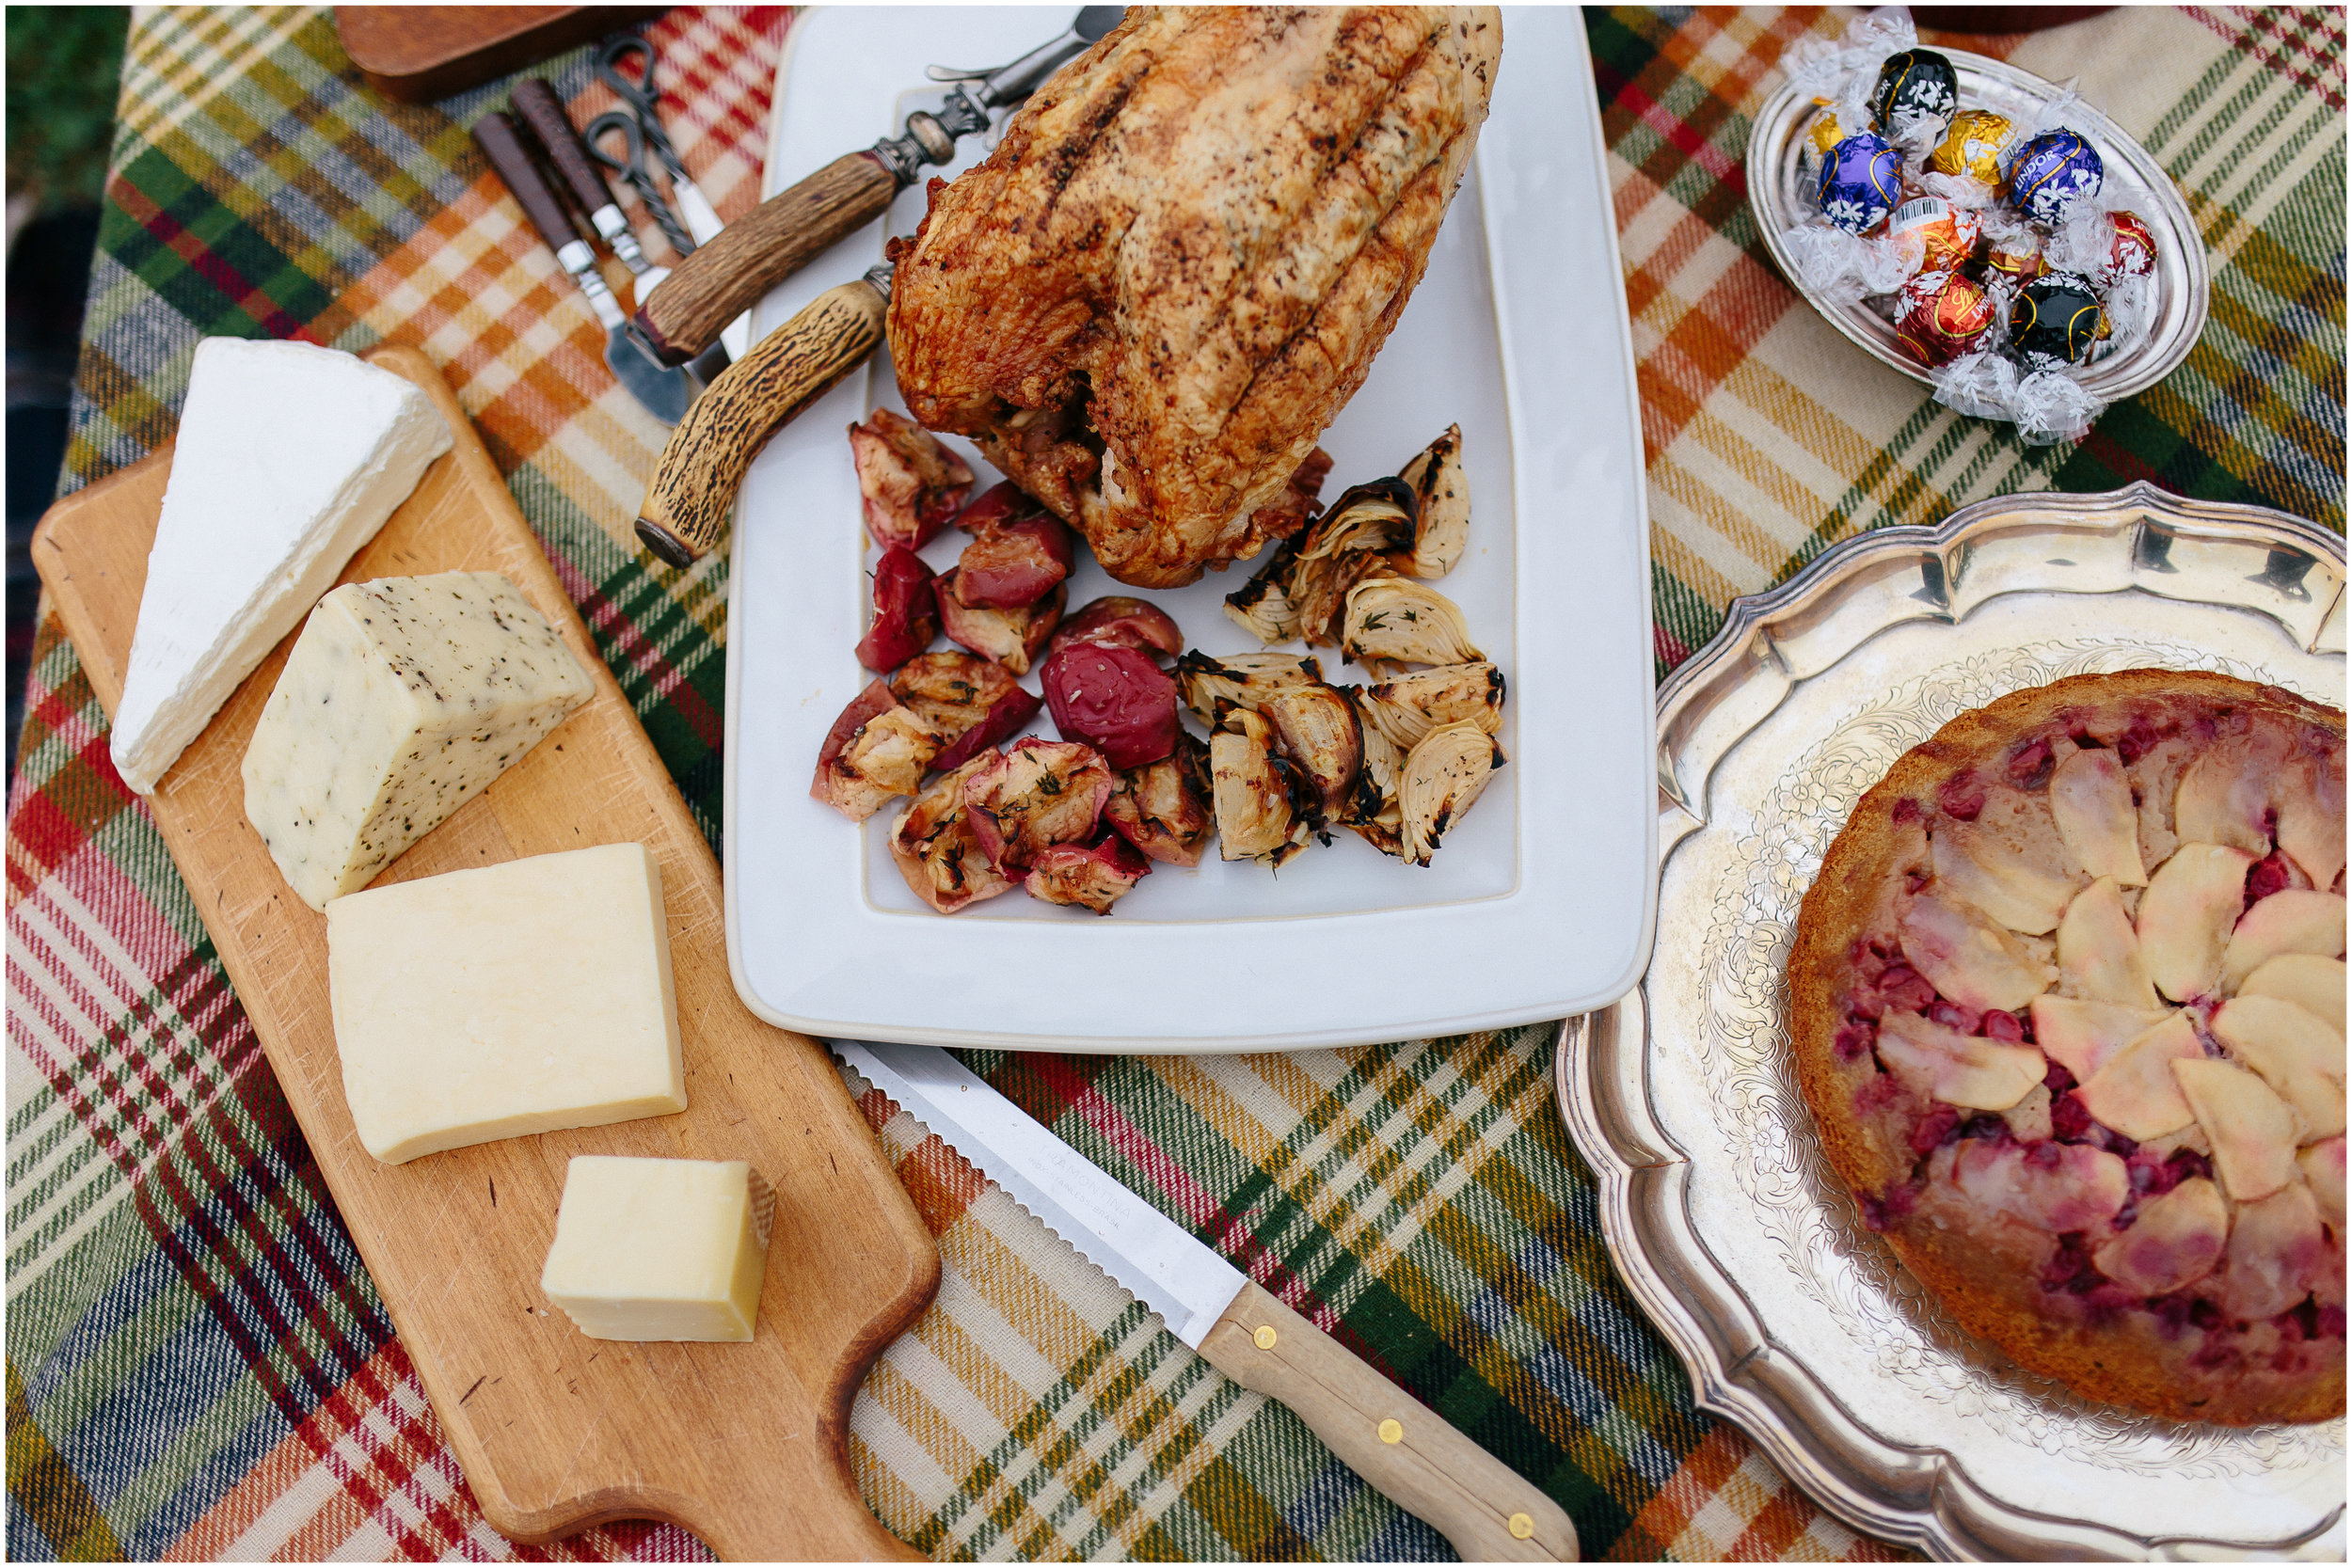 Stylish food of chicken, roasted apples, onions, cheese, brie, pie, chocolate